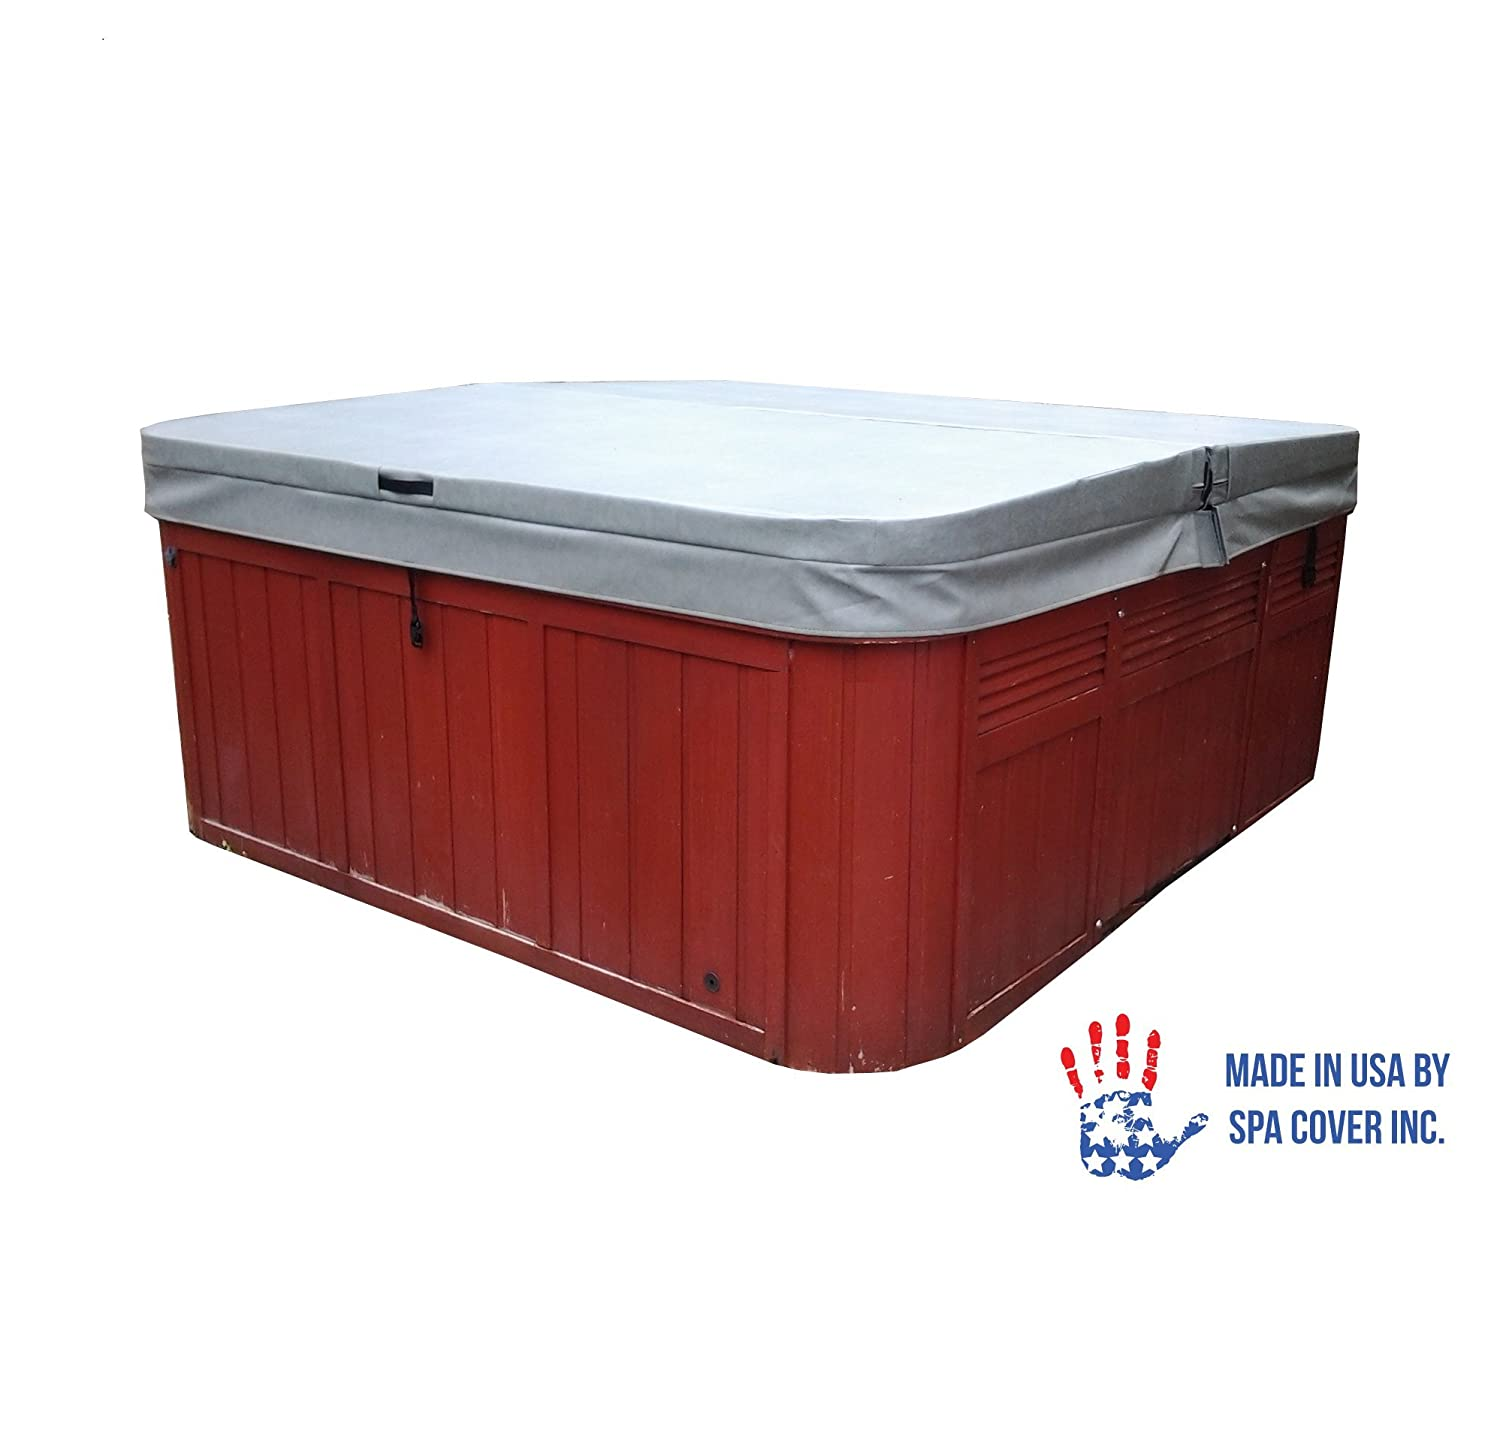 filters sparkling front additives water covers you zorbie without any chemicals slider cover for keeps sale tub hot